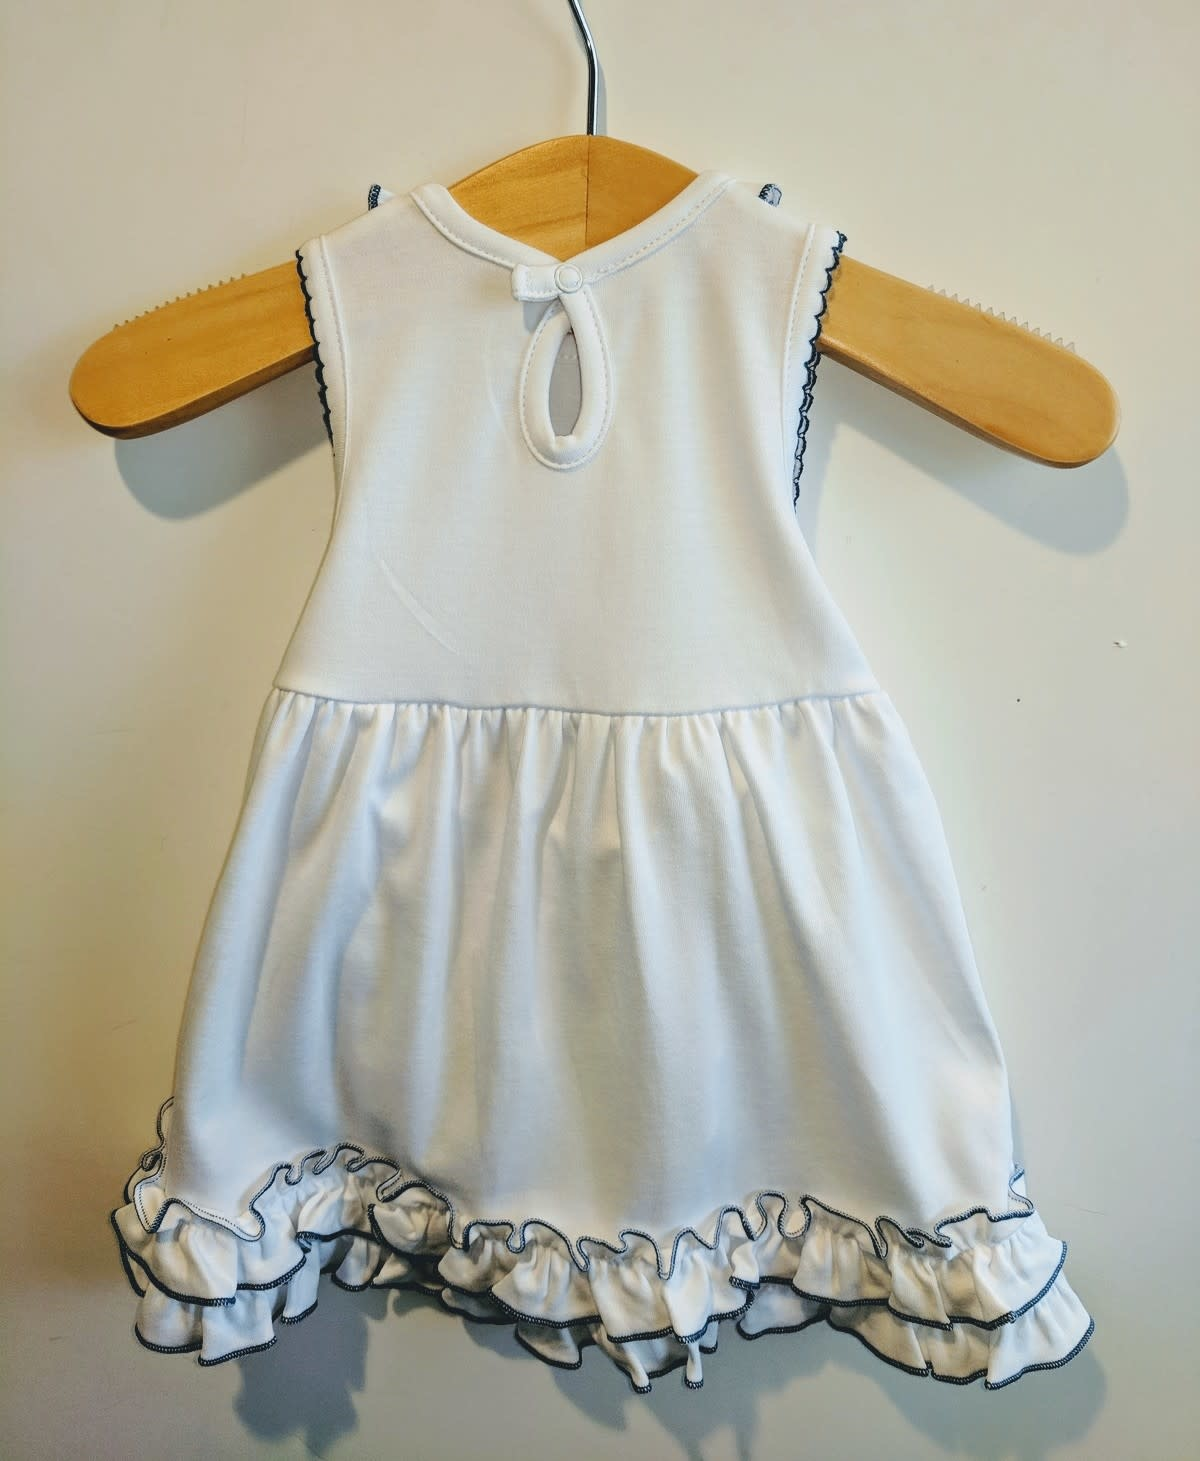 Magnolia Baby Embroidered Texas Dress / Bloomer set